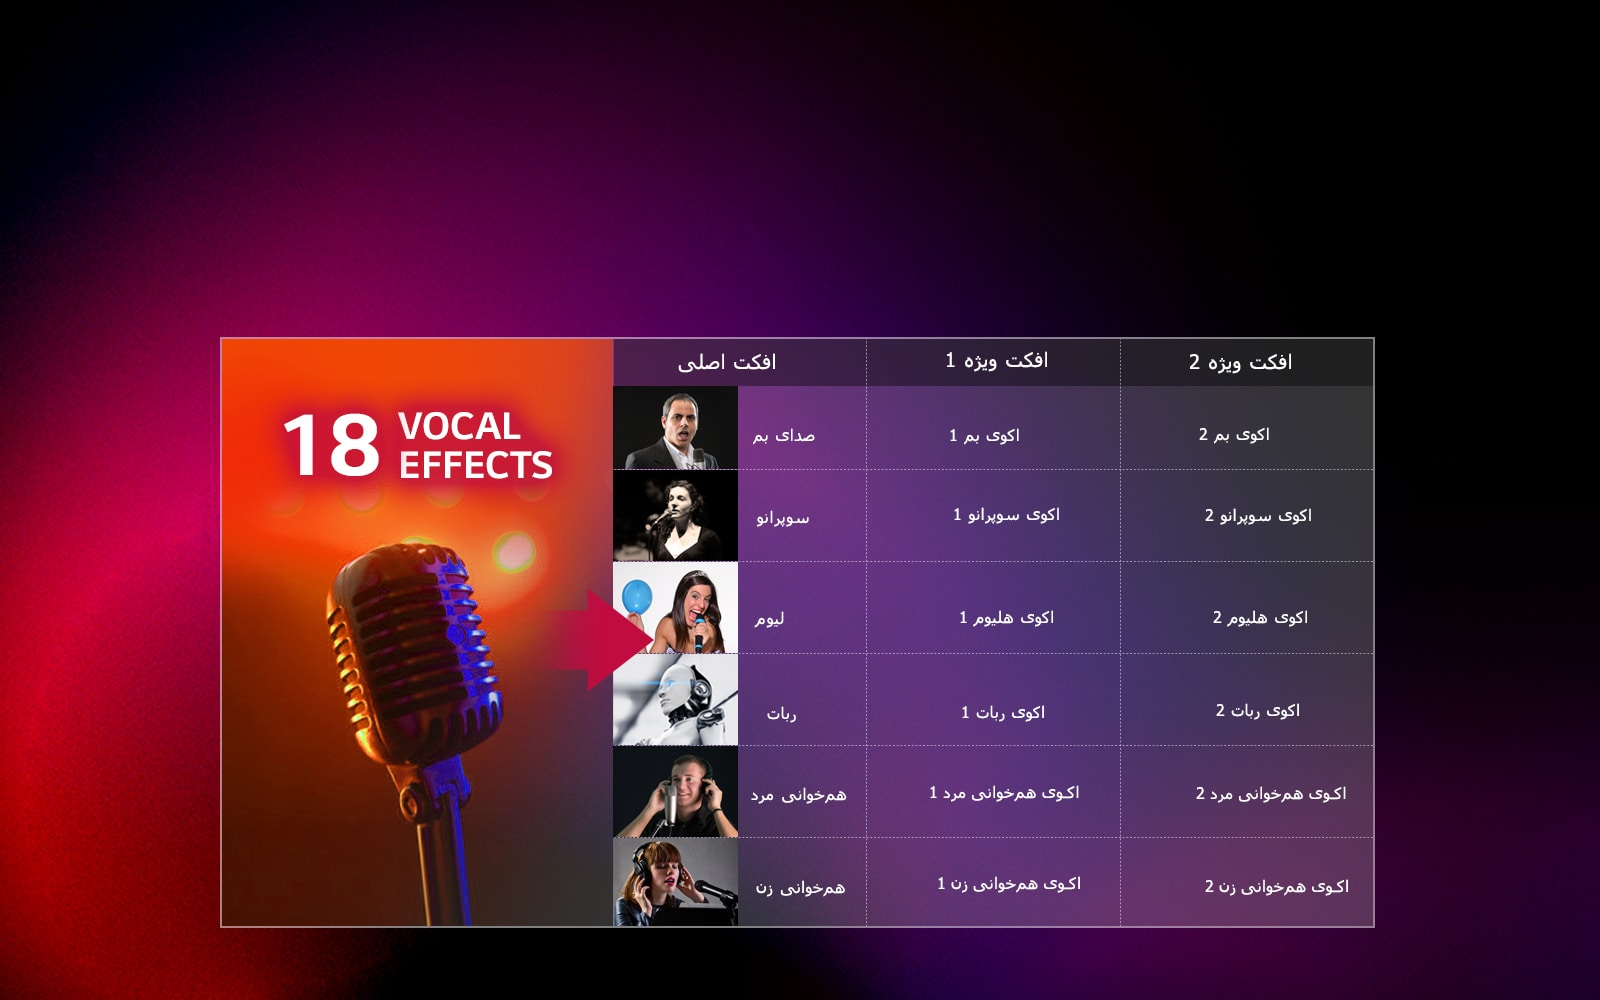 Vocal Effect, various voices bring the fun